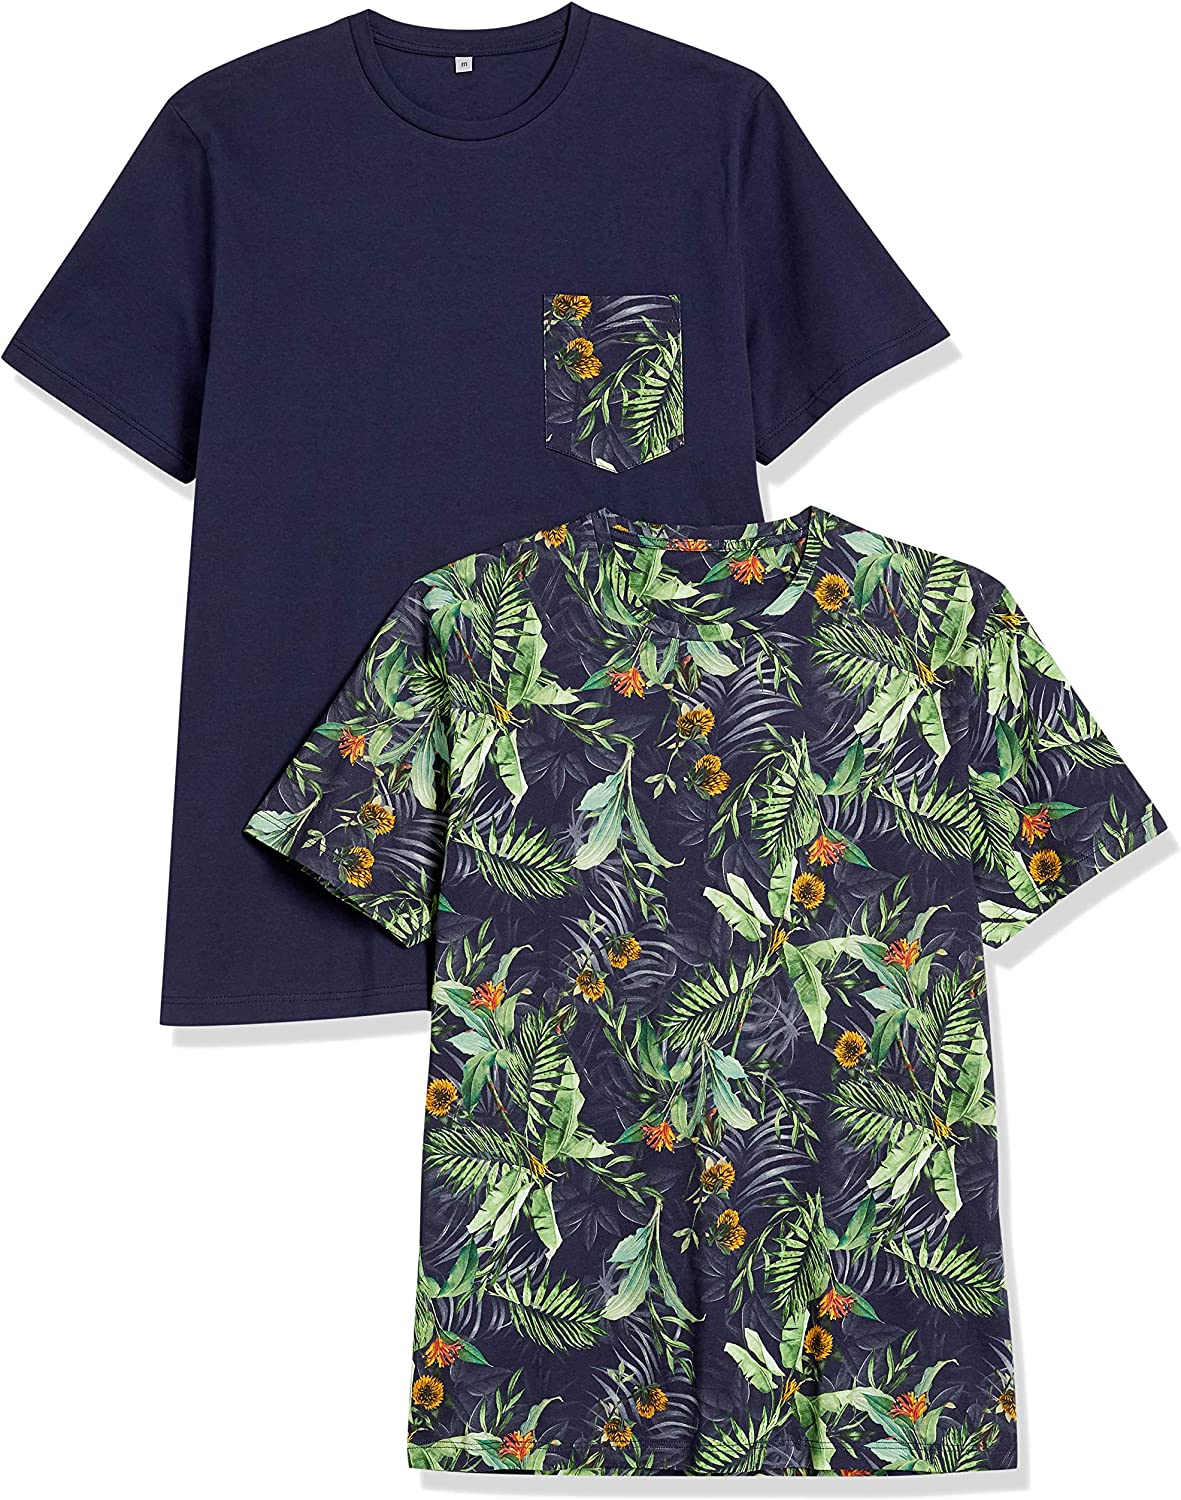 Lovert Organic Cotton T-Shirts for Men with Designs - Short Sleeve Printed Novelty T Shirt with Pocket - Pack of 2